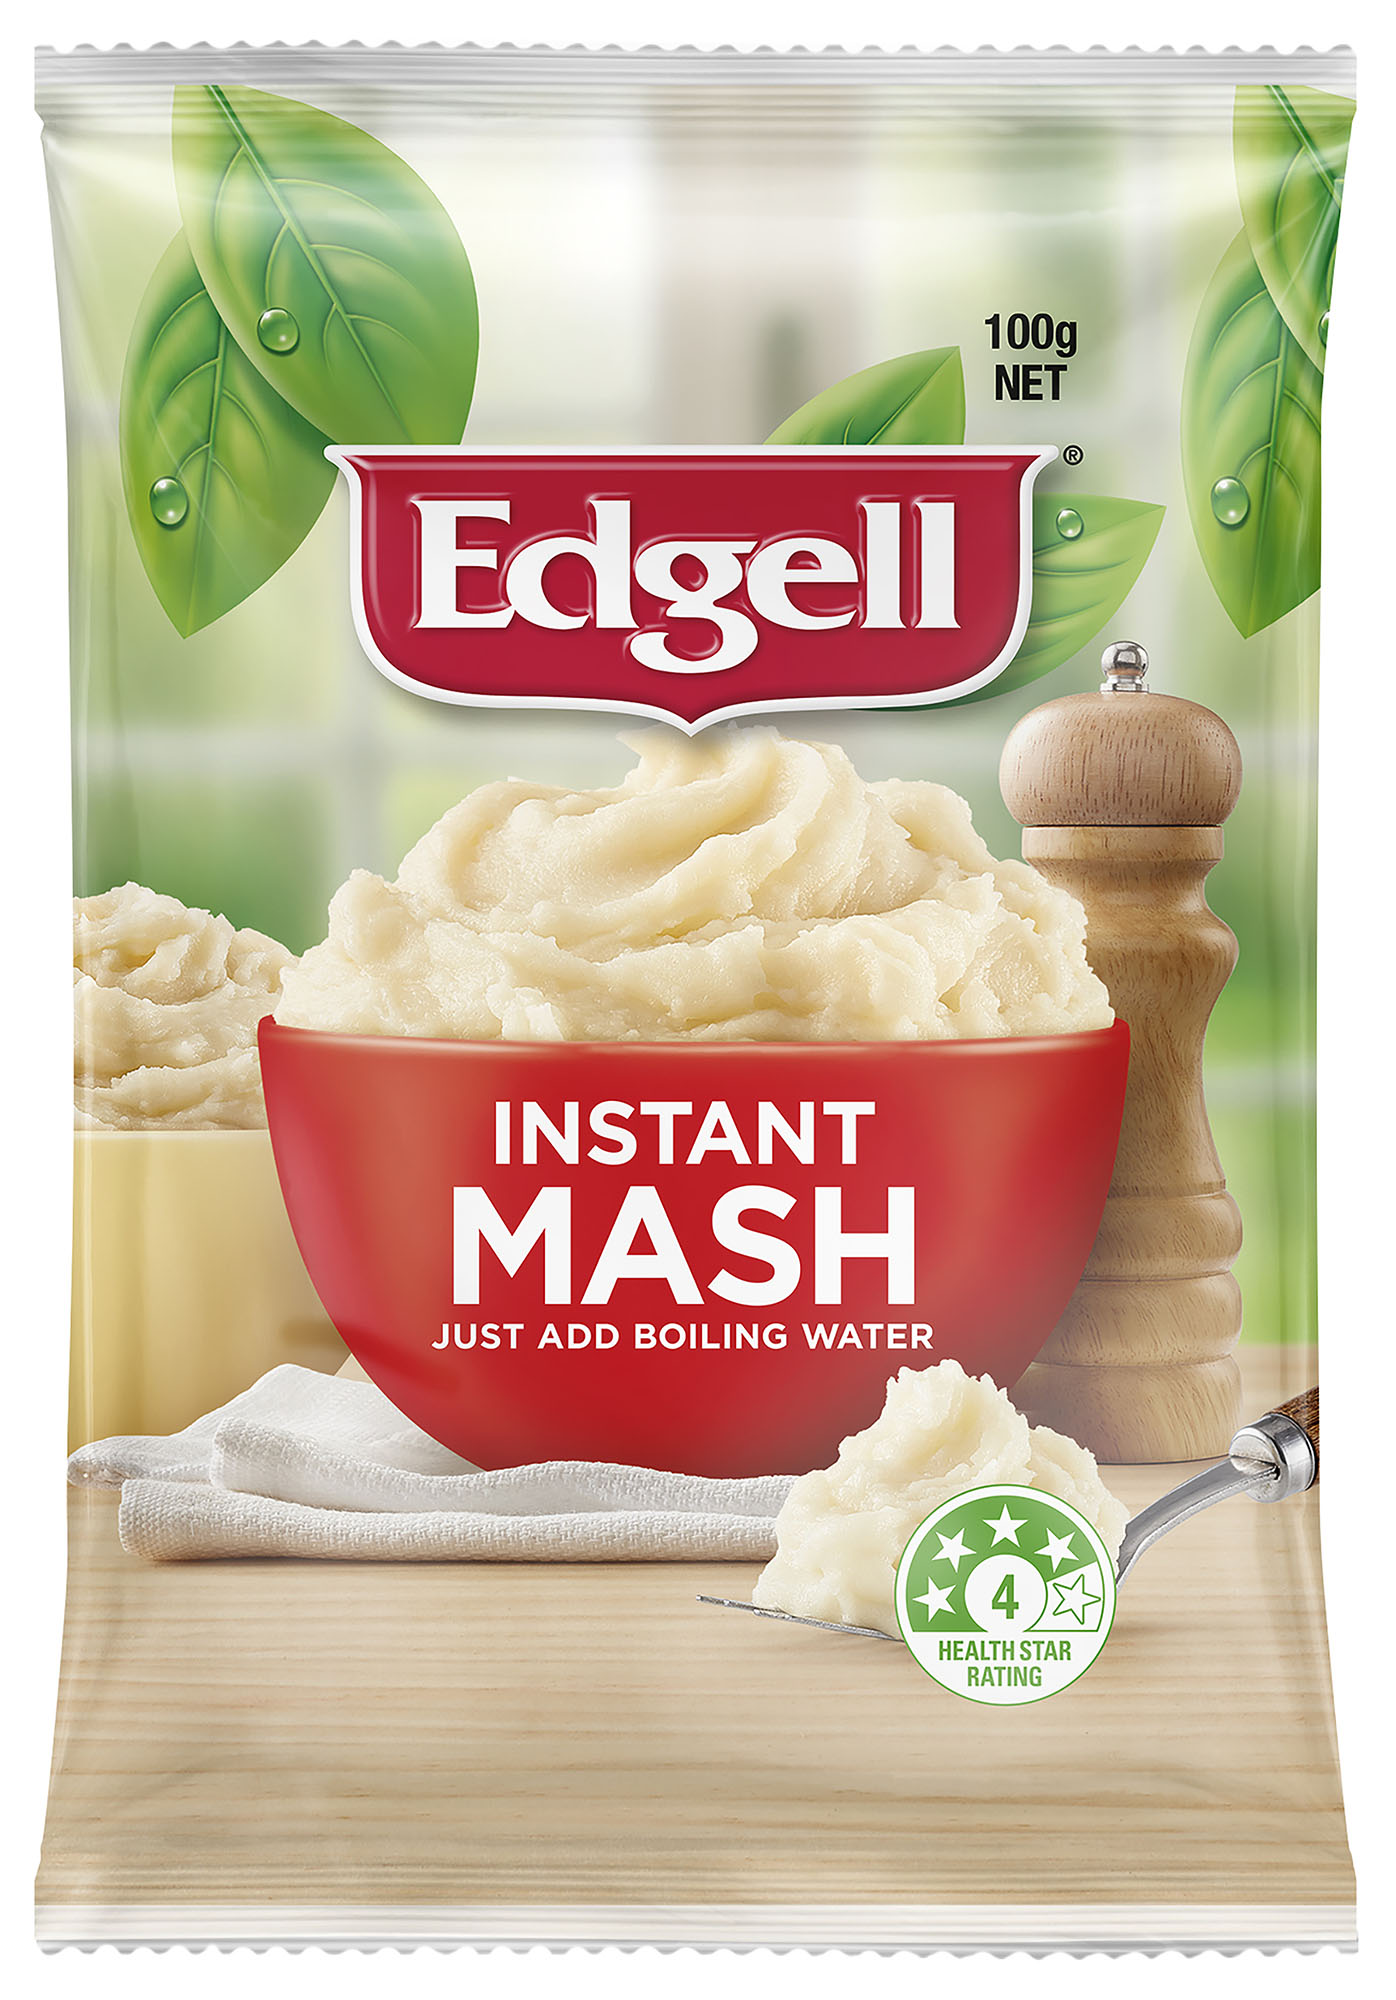 Edgell Instant Mash FMCG Packaging Food styling